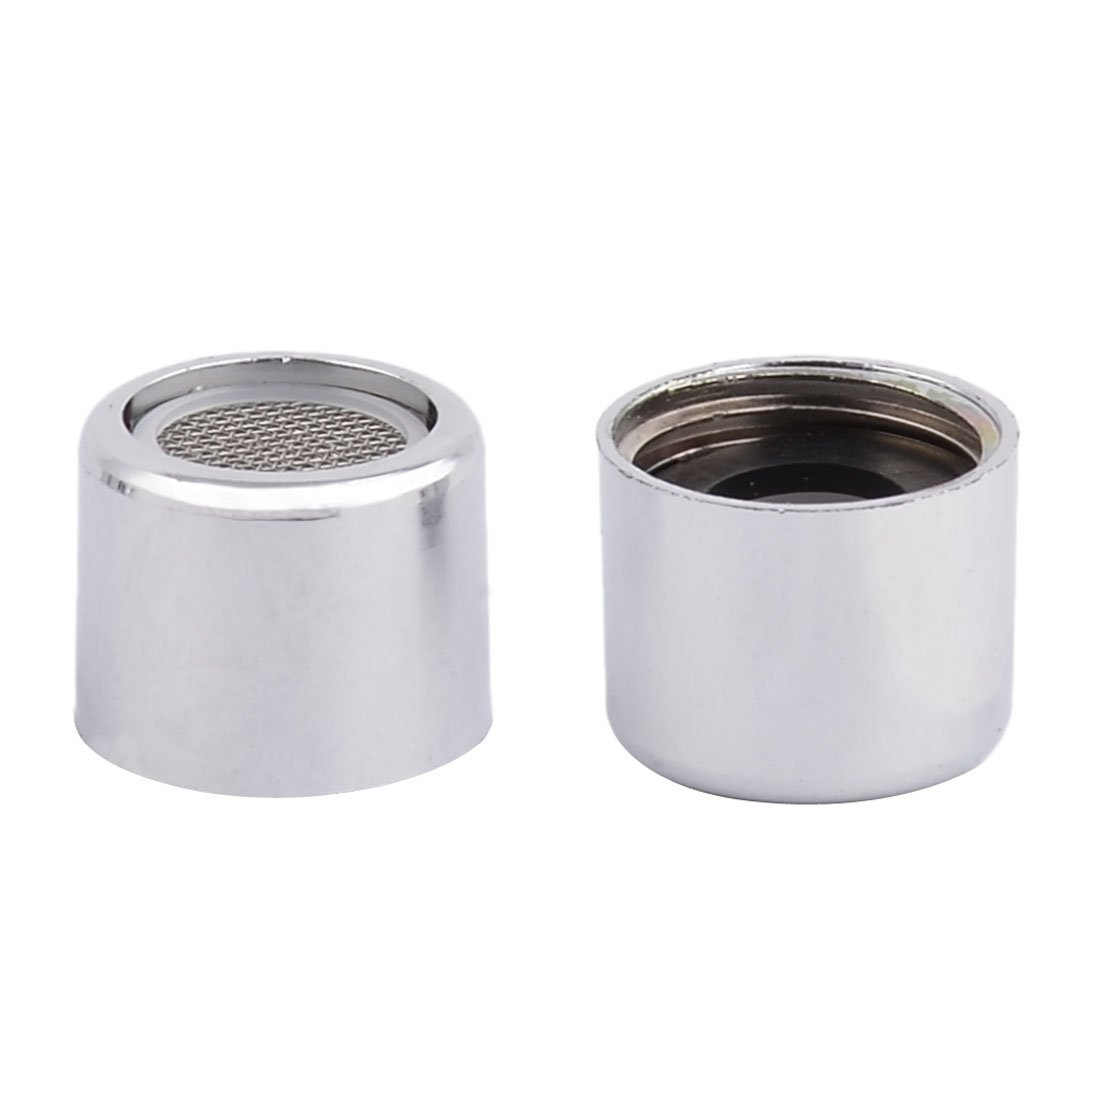 Sourcingmap Metal Home Water Cleaning Waste Stopper Faucet Nozzle Filter 2 Pcs Silver Tone sourcing map